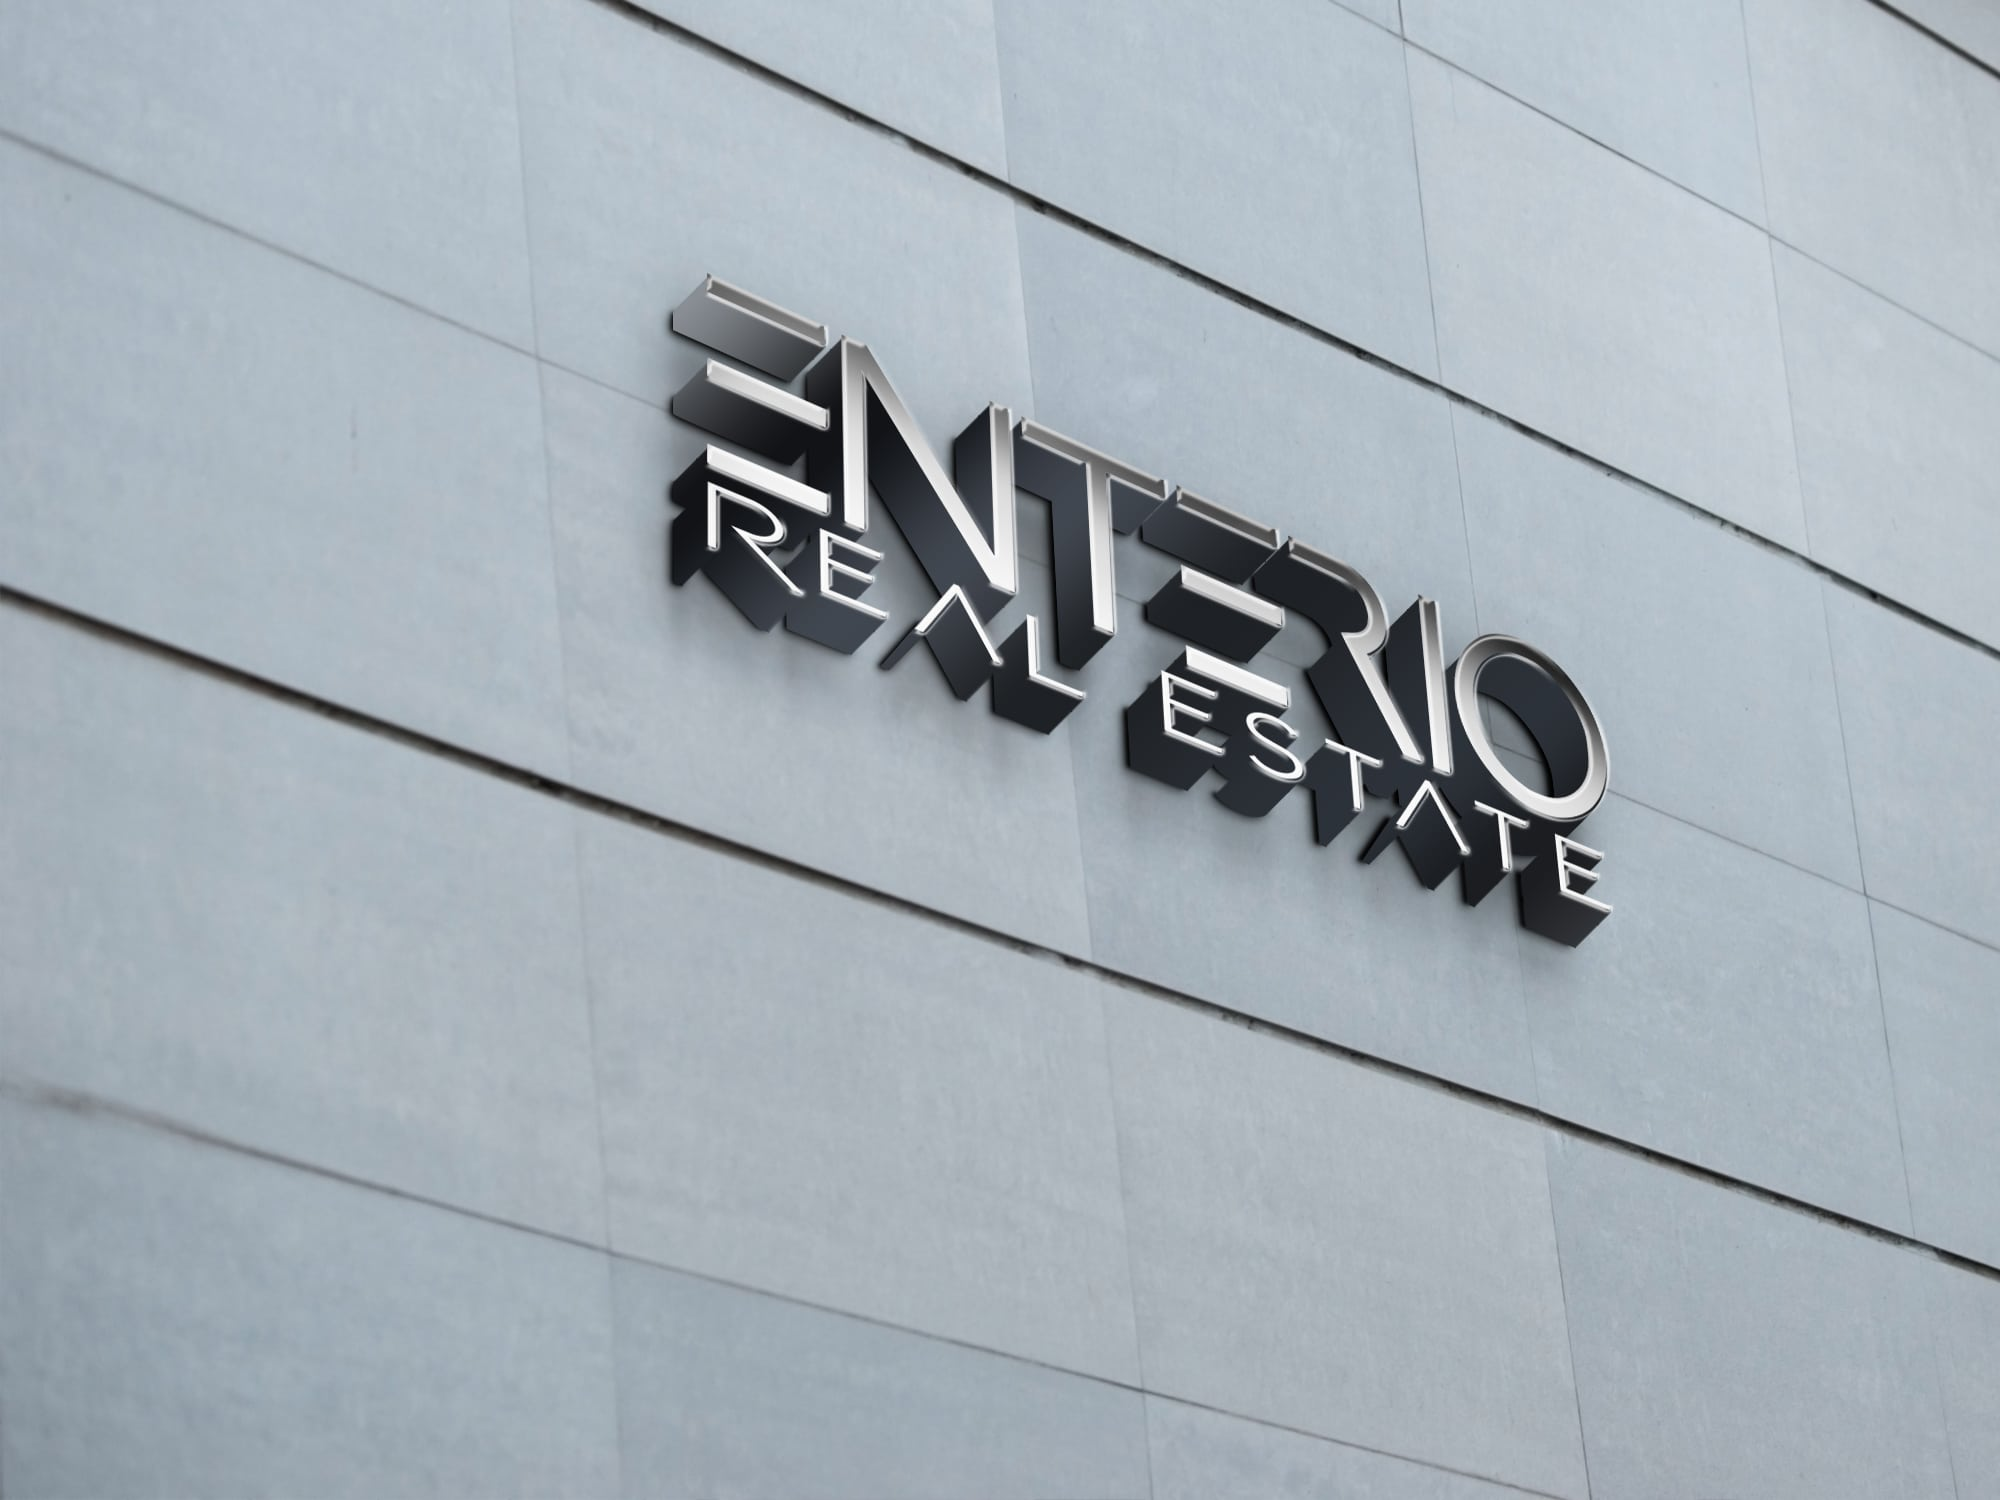 Enterio Real Estate